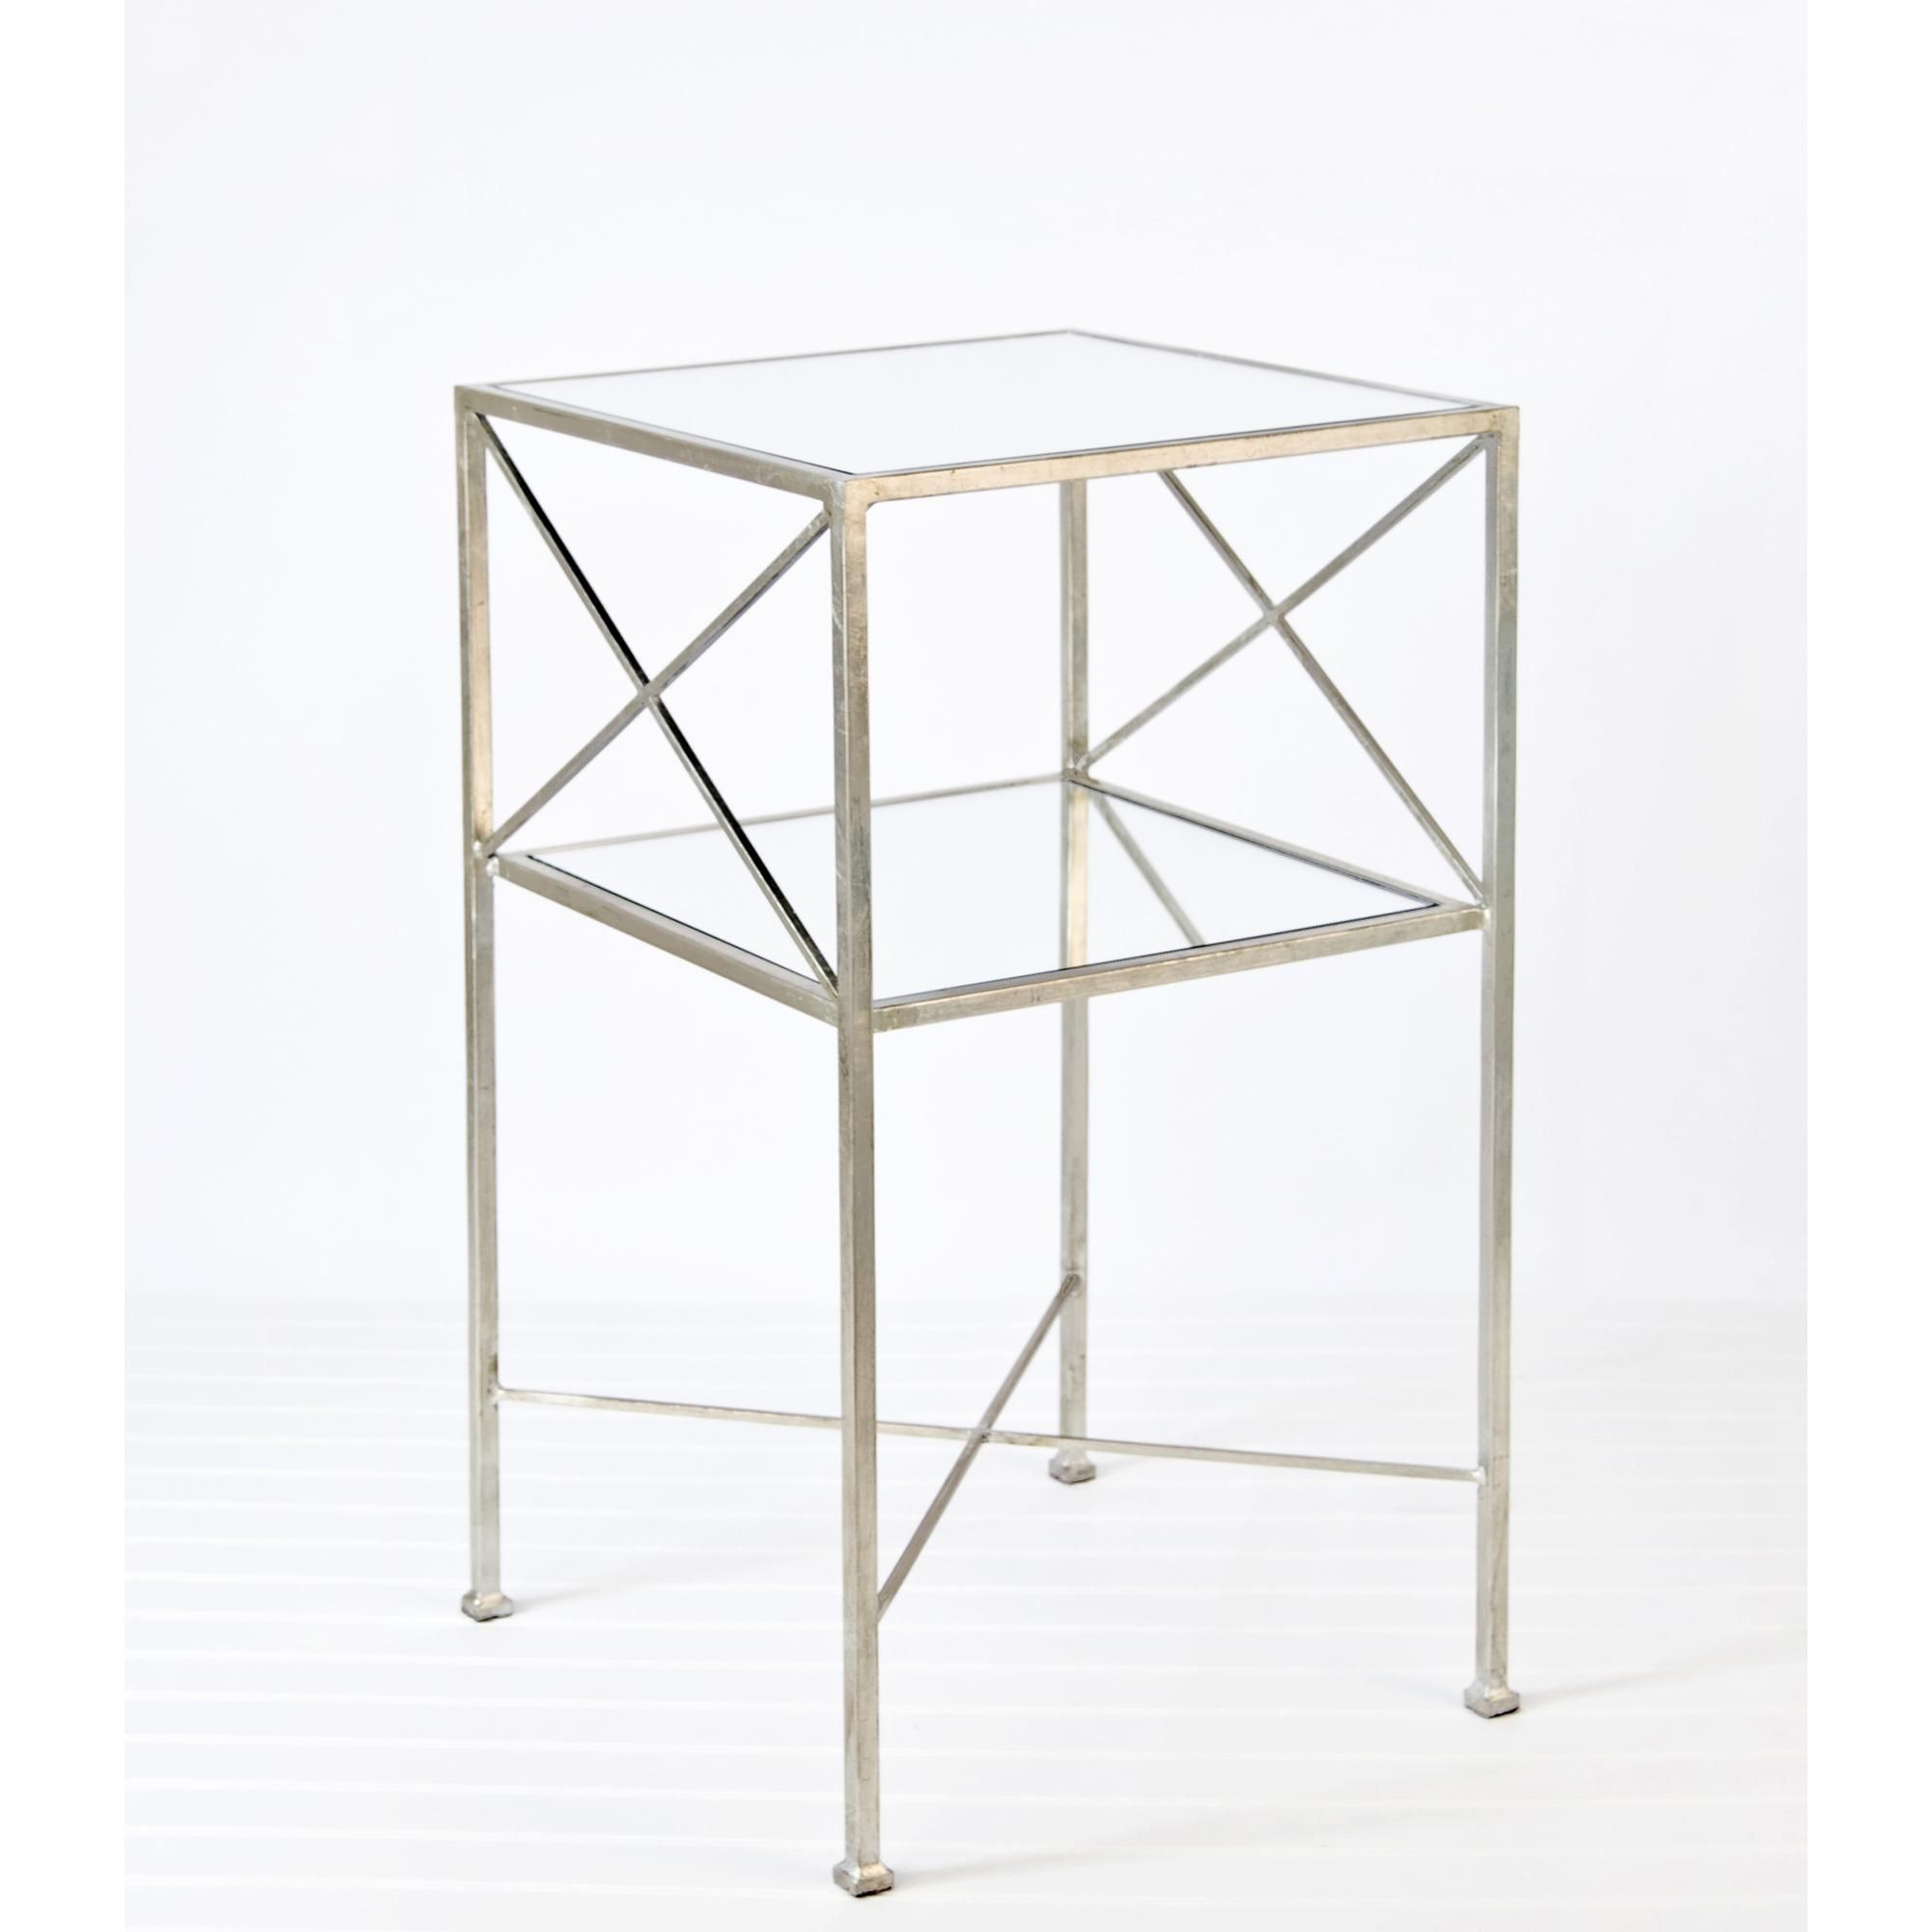 worlds away two tier square side table with silver leaf casegoods mila accent west elm tablecloth meyda floor lamps cube cocktail small chest cabinet hanging wall clock living end